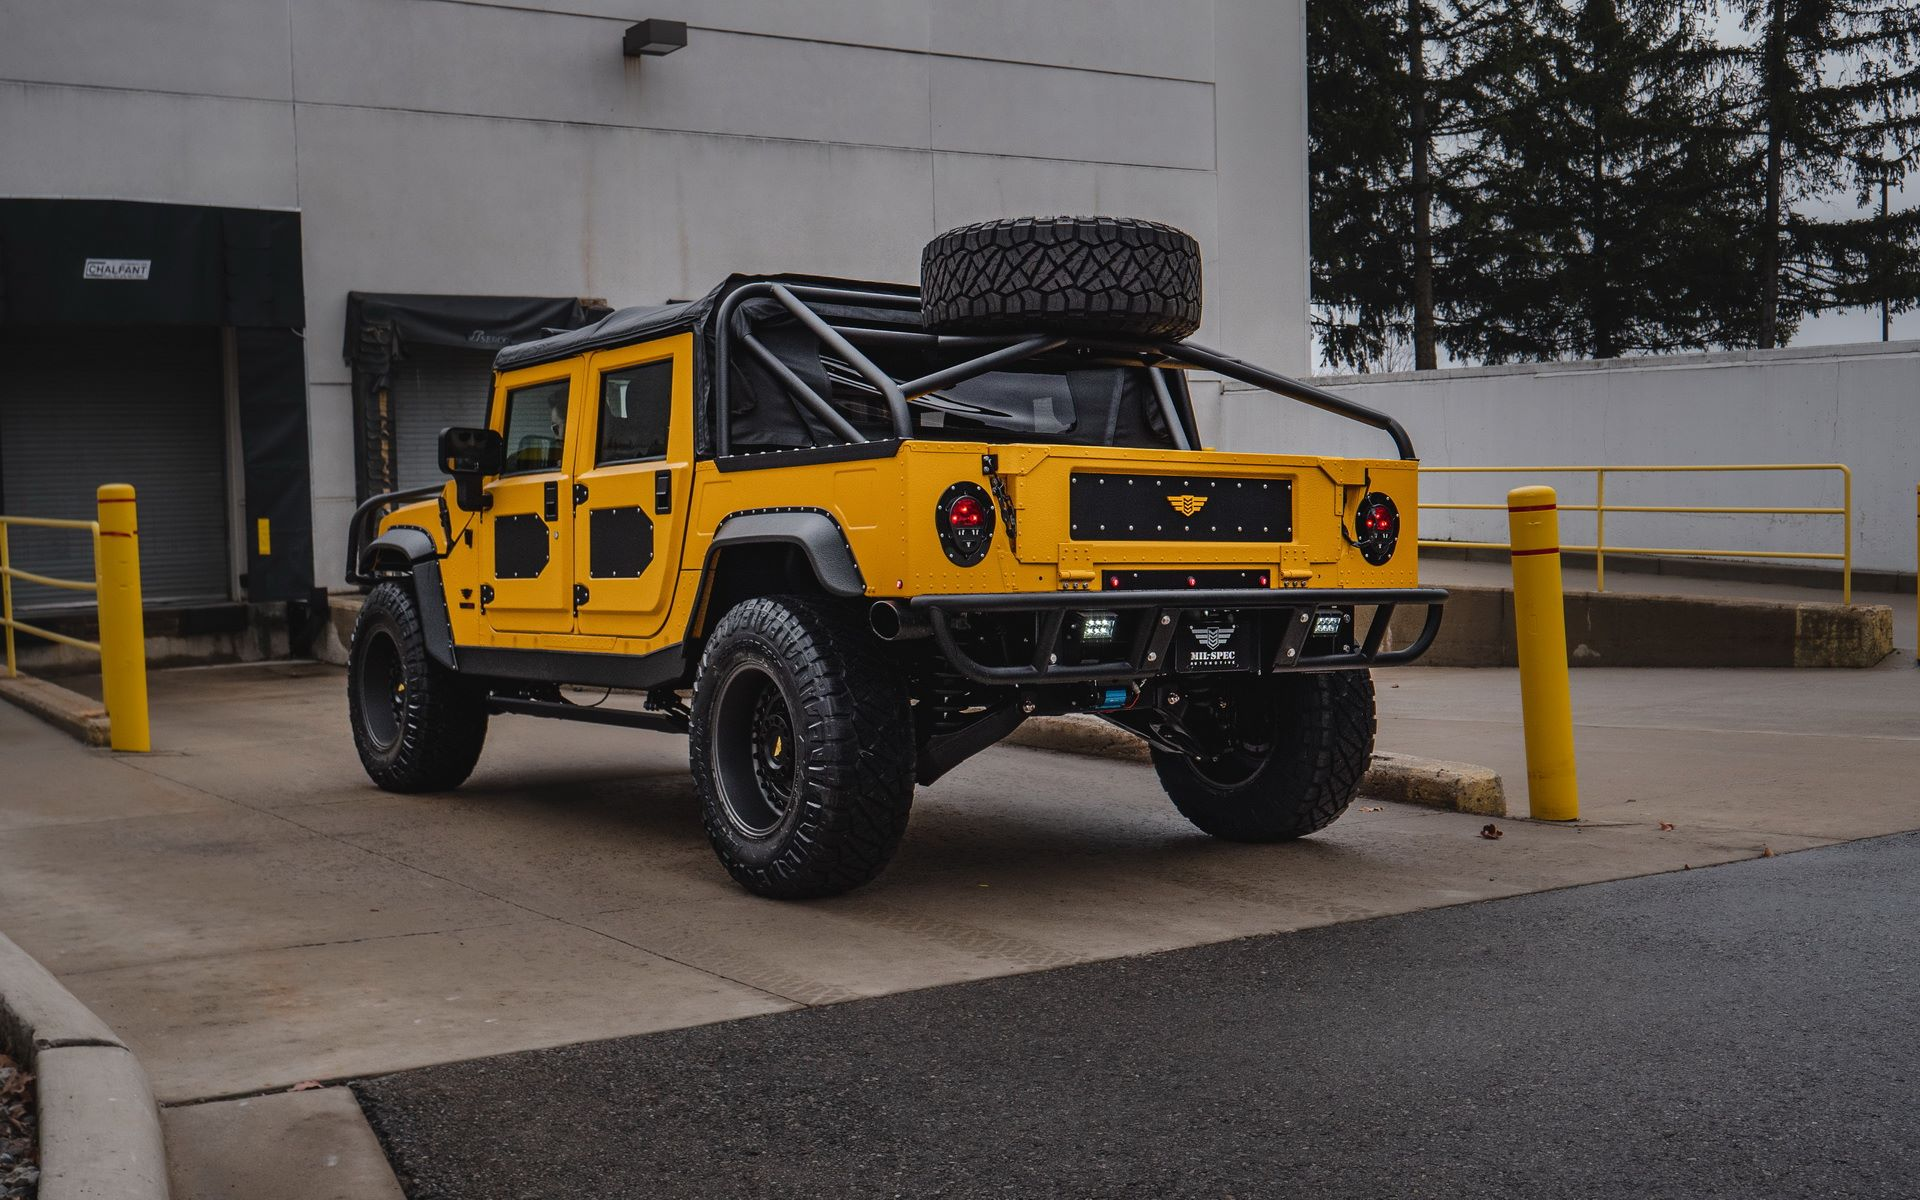 Hummer-M1-R-by-Mil-Spec-6